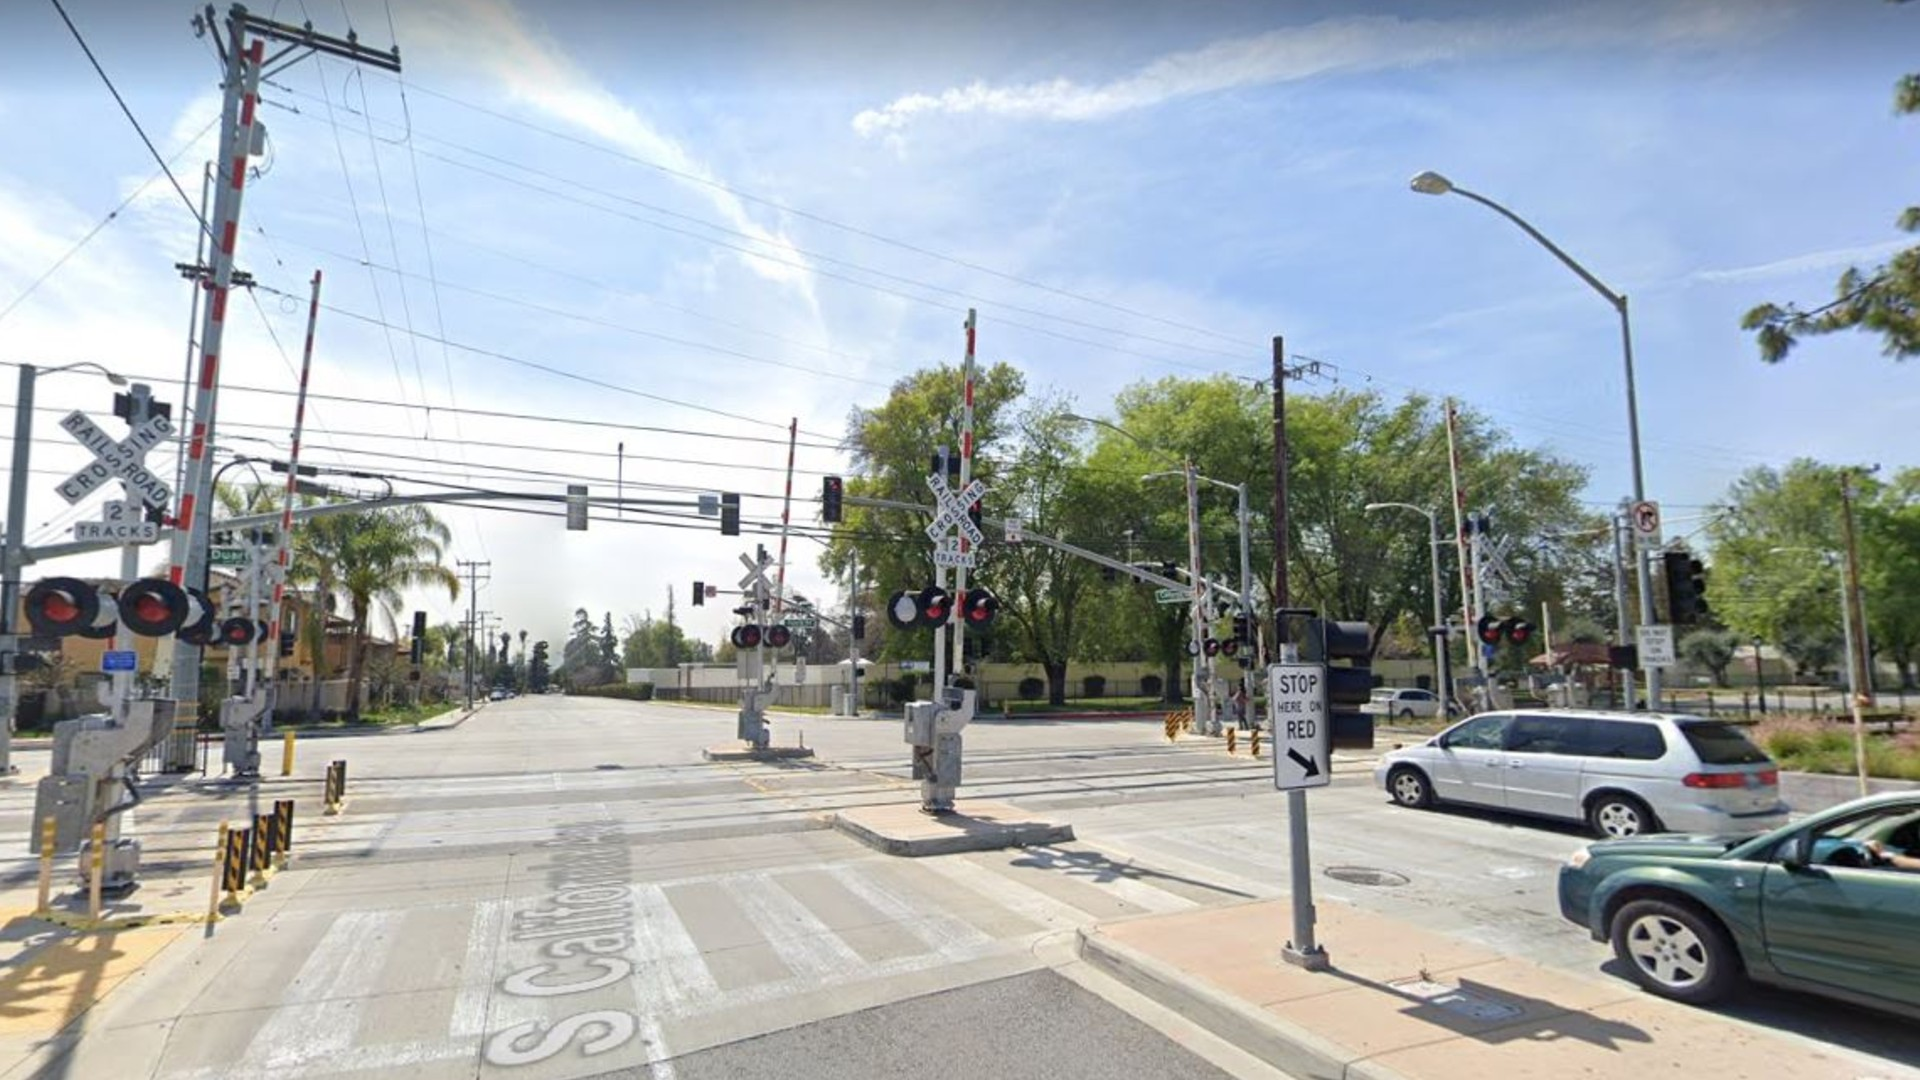 A set of train tracks alongside the intersection of California Avenue and Duarte Road in Monrovia, as pictured in a Google Street View image.